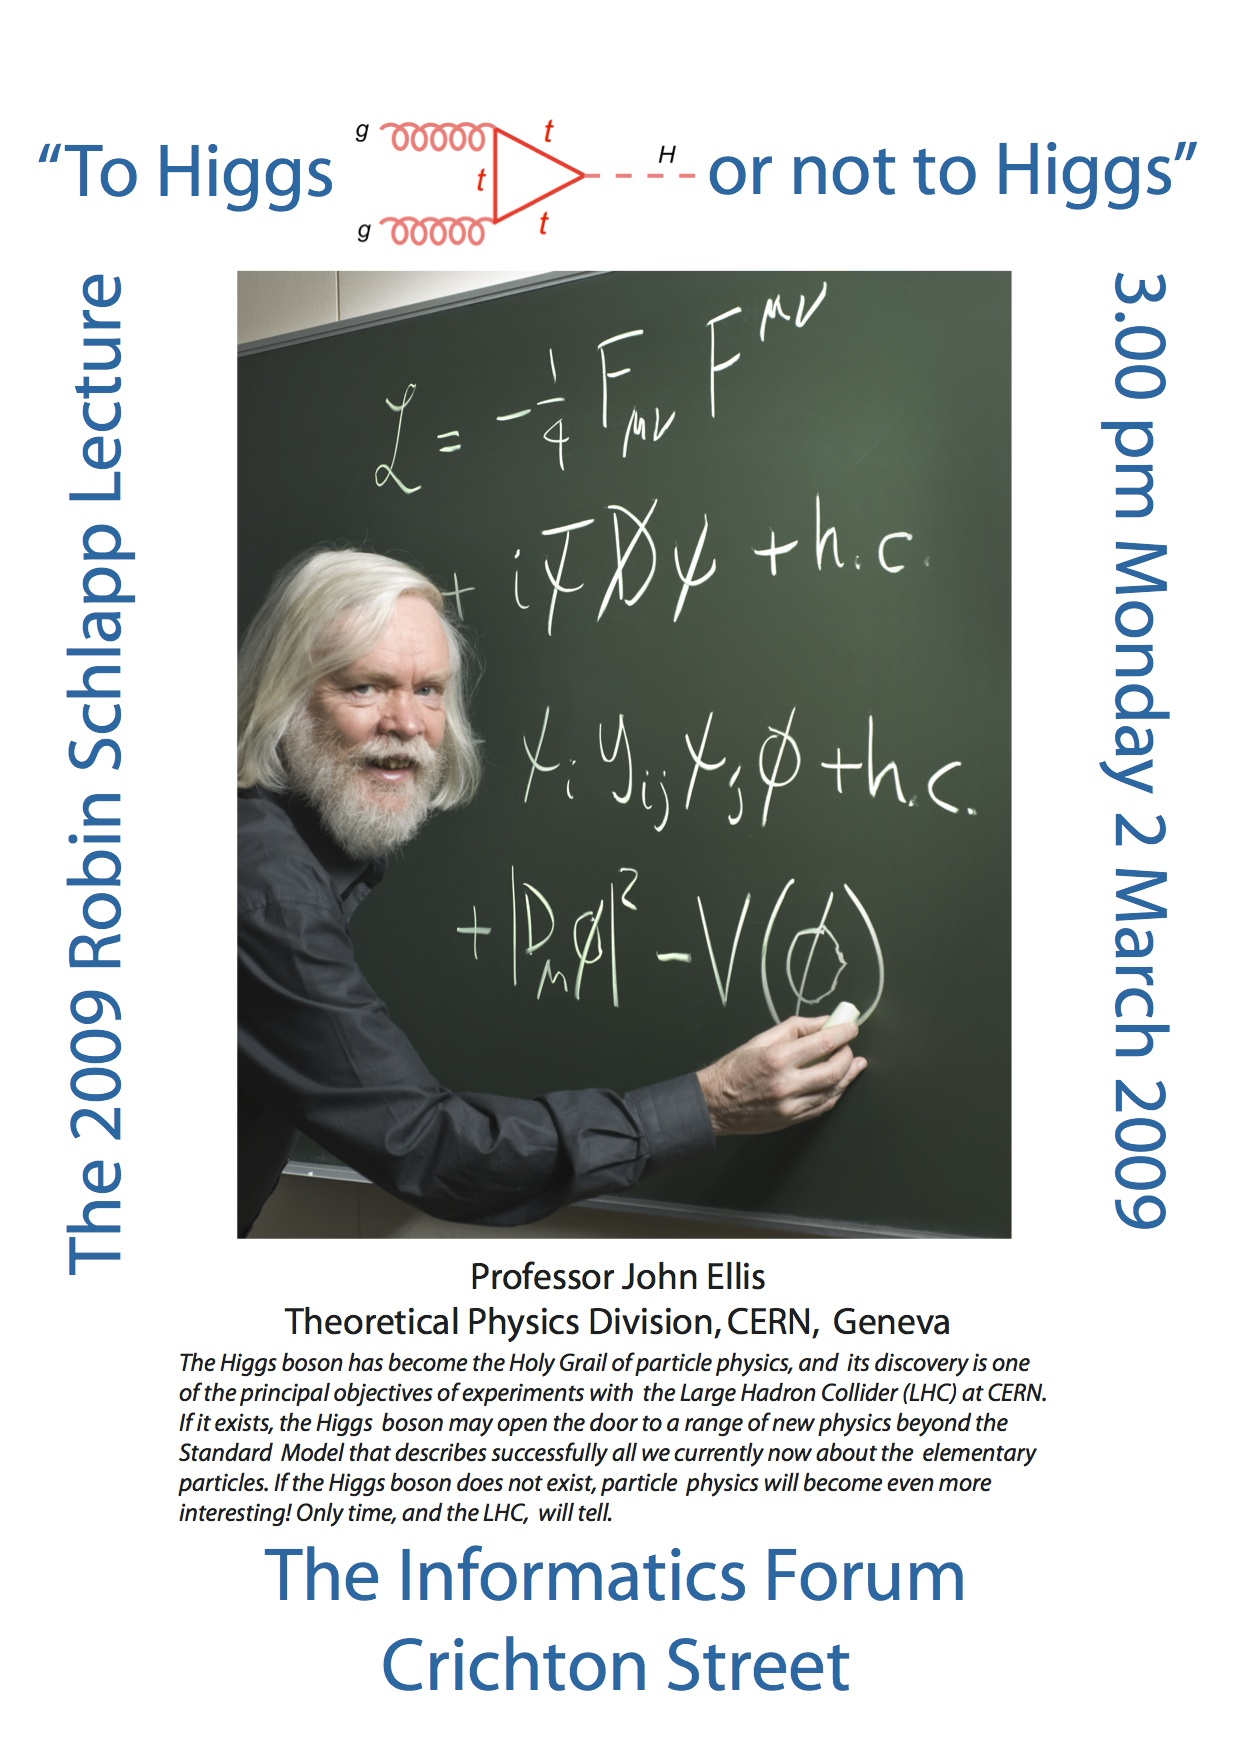 Poster advertising the 2009 Robin Schlapp lecture 'To Higgs or not To Higgs' held before the 80th birthday celebration. The lecture was given by Professor John Ellis of the Theoretical Physics Divison of CERN and now Clerk Maxwell Professor at Kings College London. Photograph of John Ellis courtesy of CERN photo. Poster designed by Alan Walker.